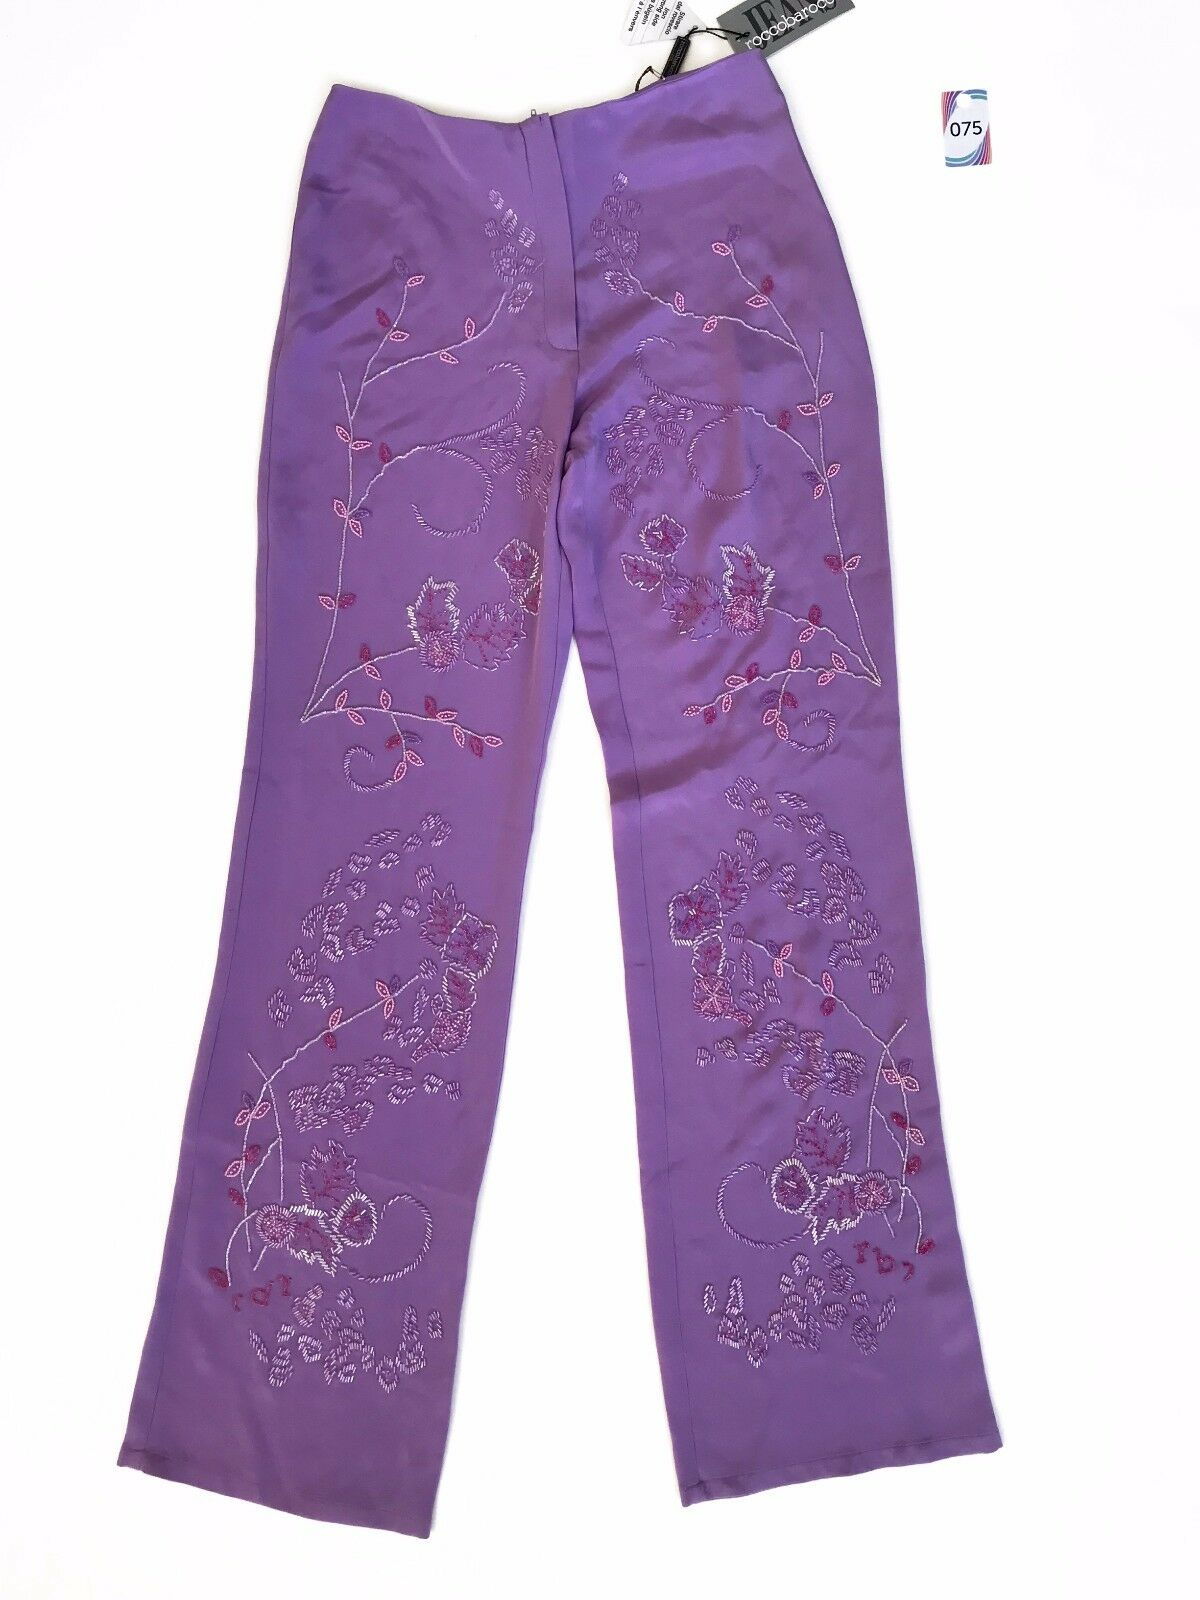 ROCCOBAROCCO JEANS  WOMEN'S PURPLE PANTS SIZE 28 42 WITH TAGS MADE IN ITALY 75